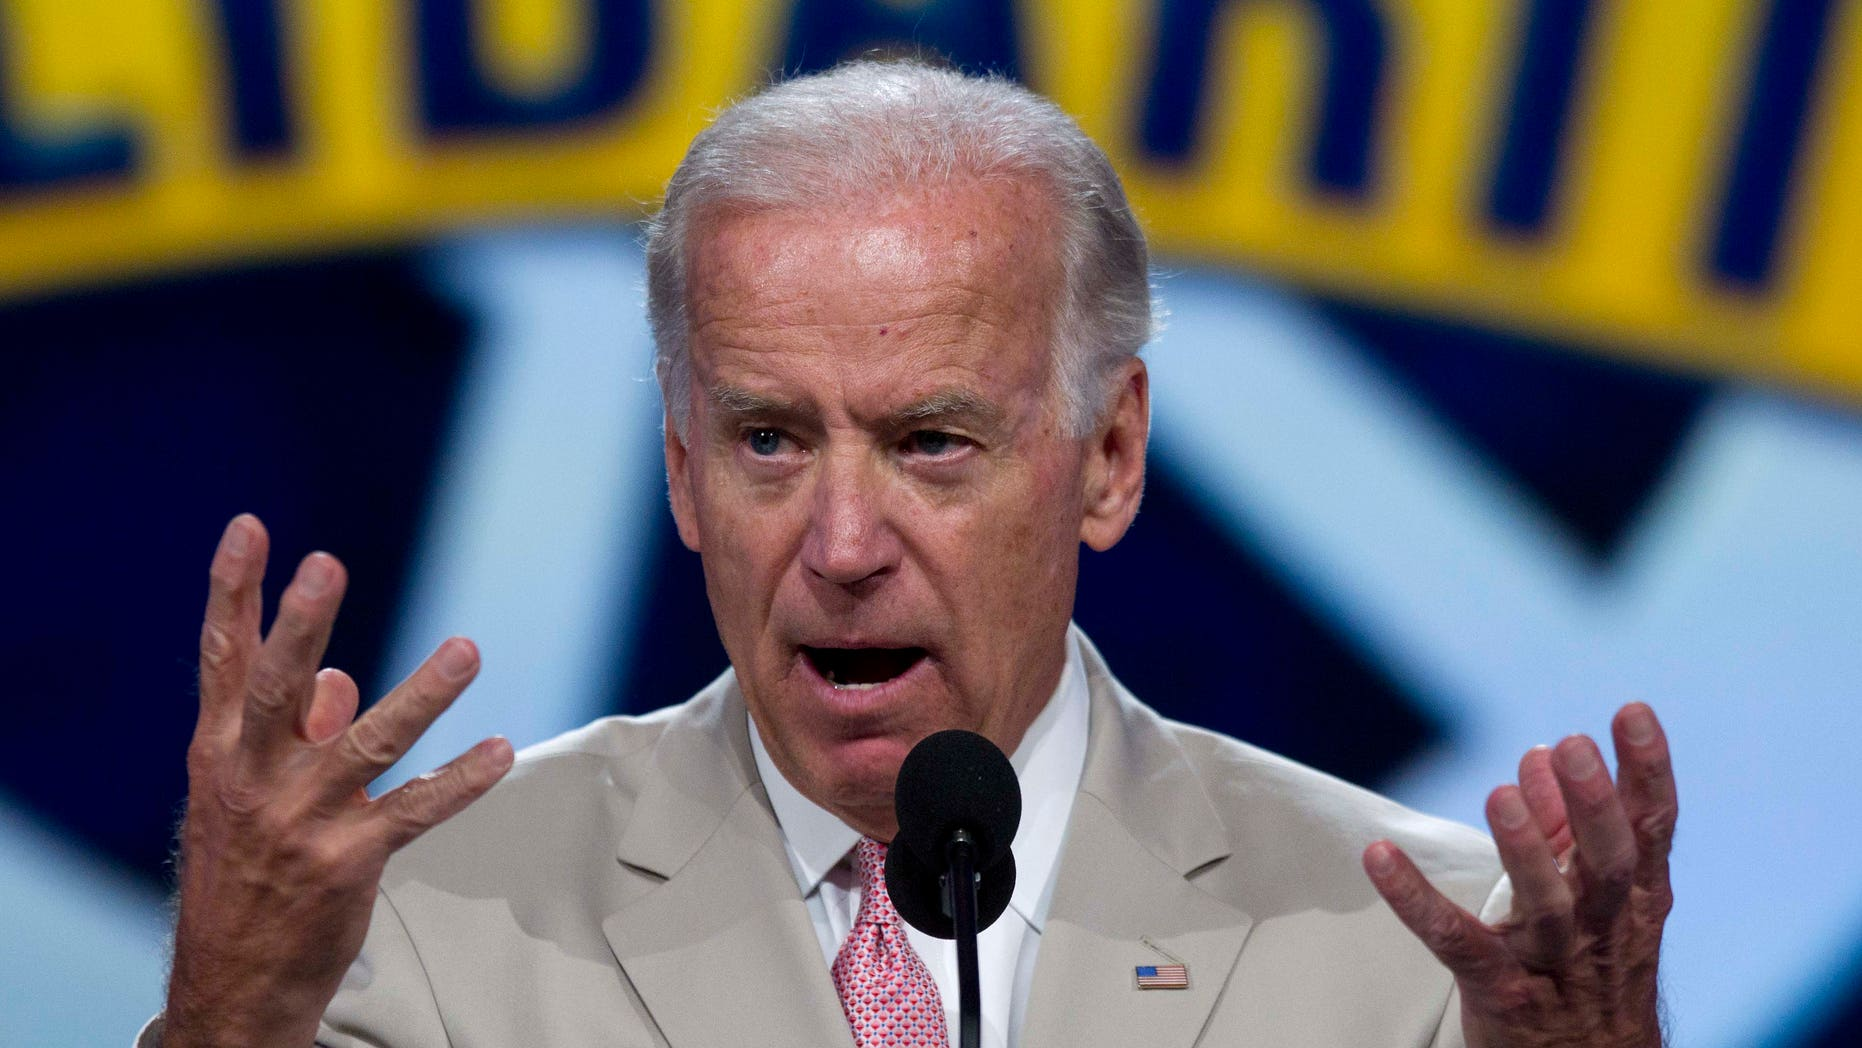 Vice President Biden addresses delegates and members at the union's international convention, Friday, July 1, 2011, in Las Vegas.